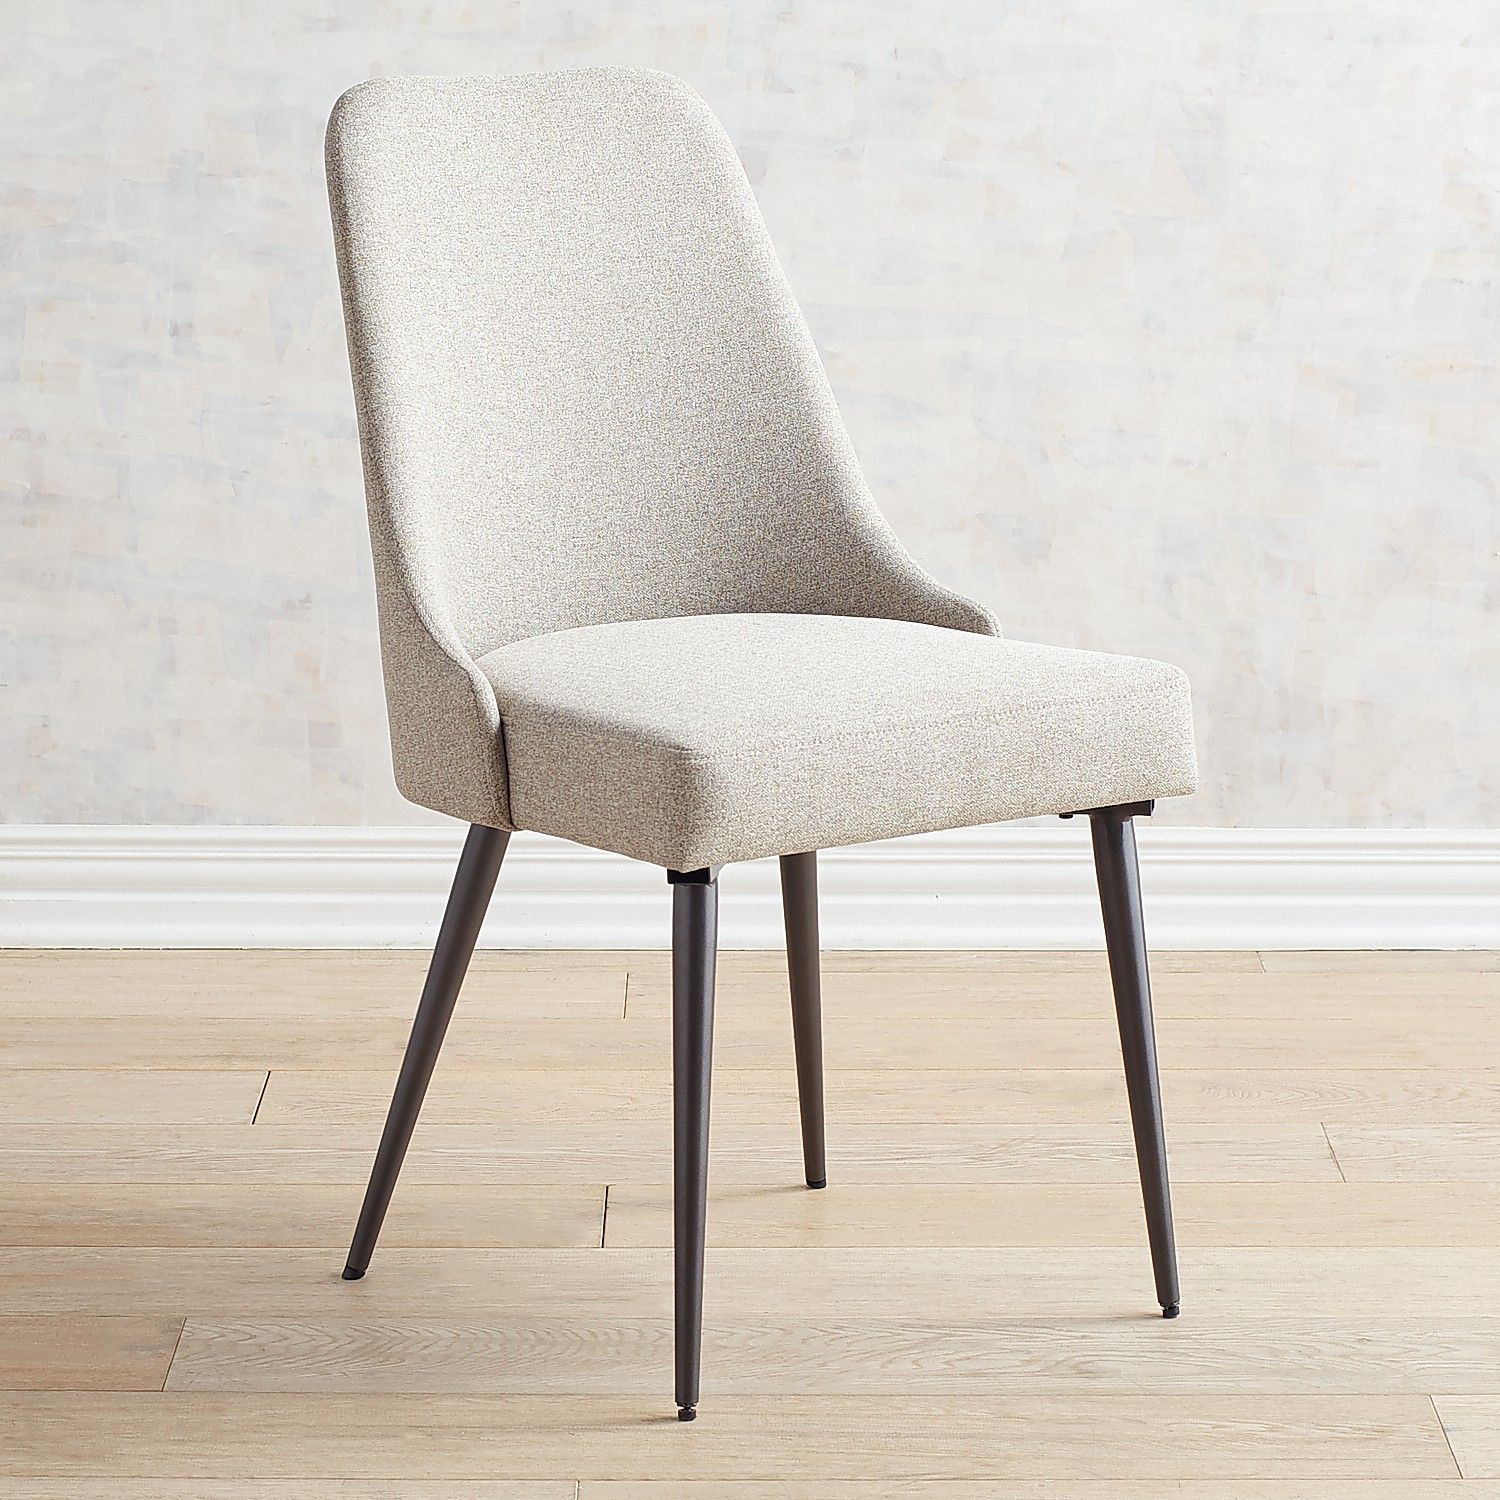 Null Brown Dining Chairs Gray Dining Chairs Gold Dining Chairs